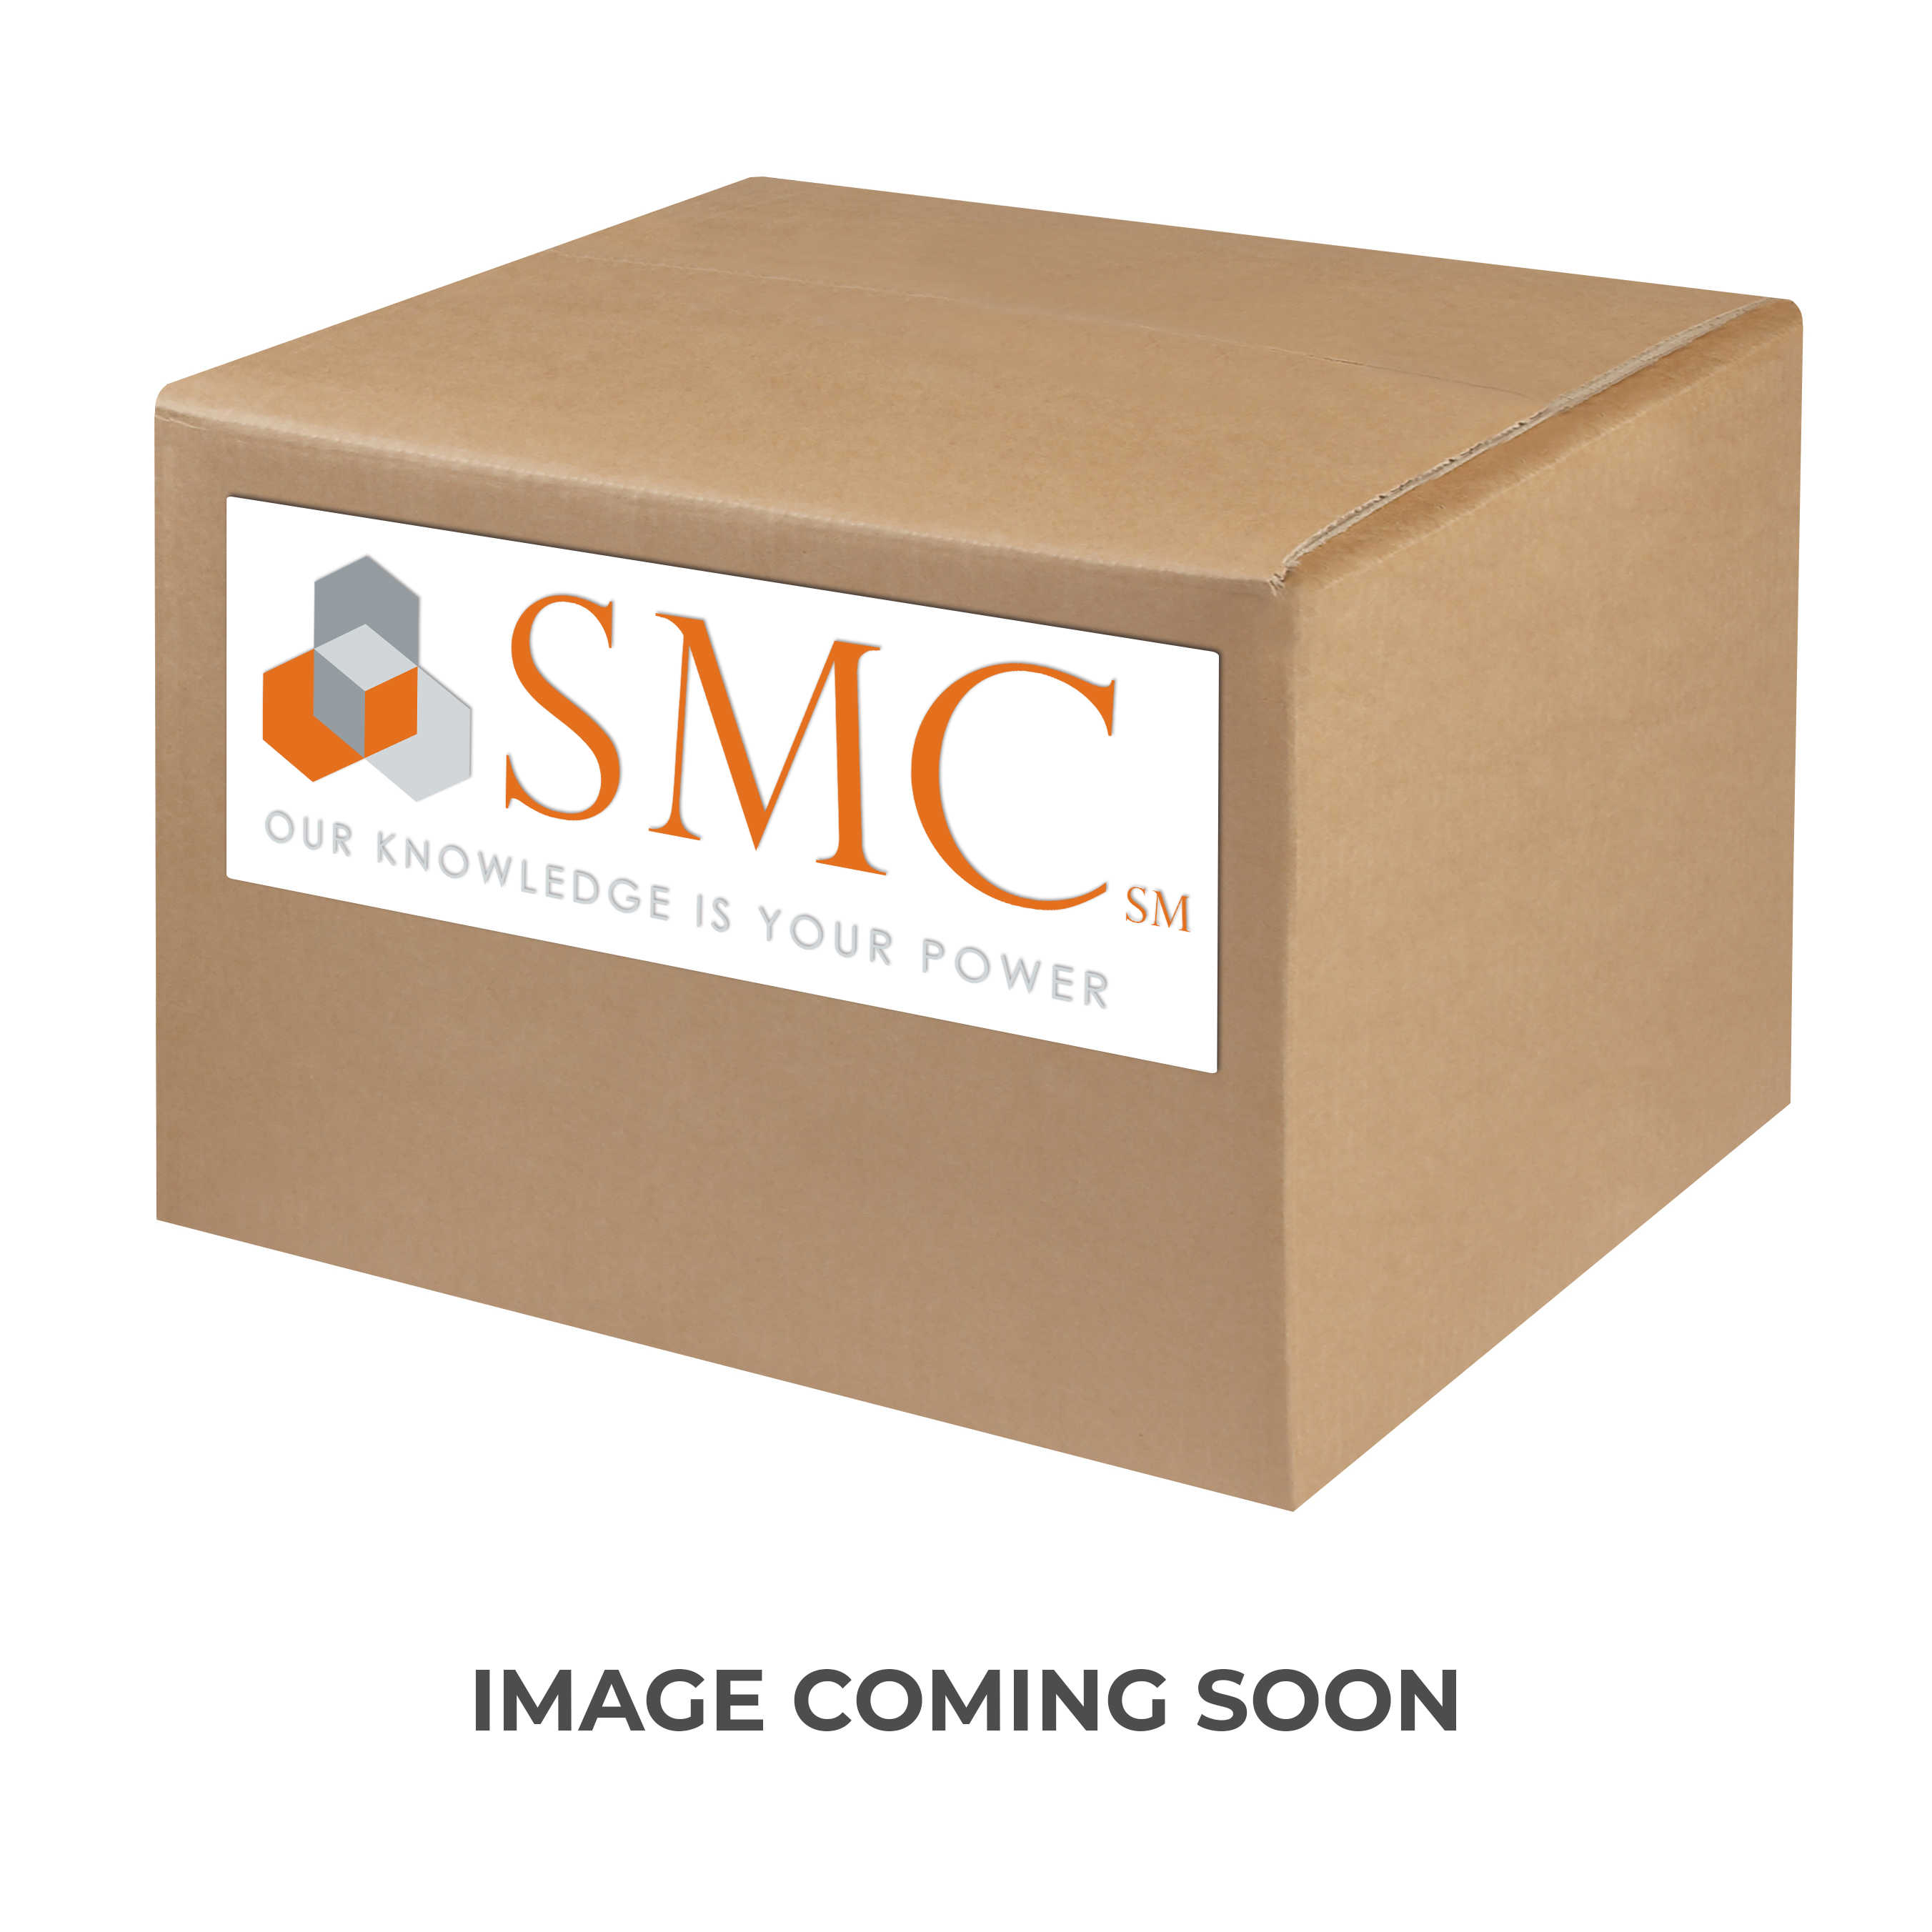 SMC® AN101-N01 AN Series Silencer, 1/8 in NPT Inlet, 1 MPa